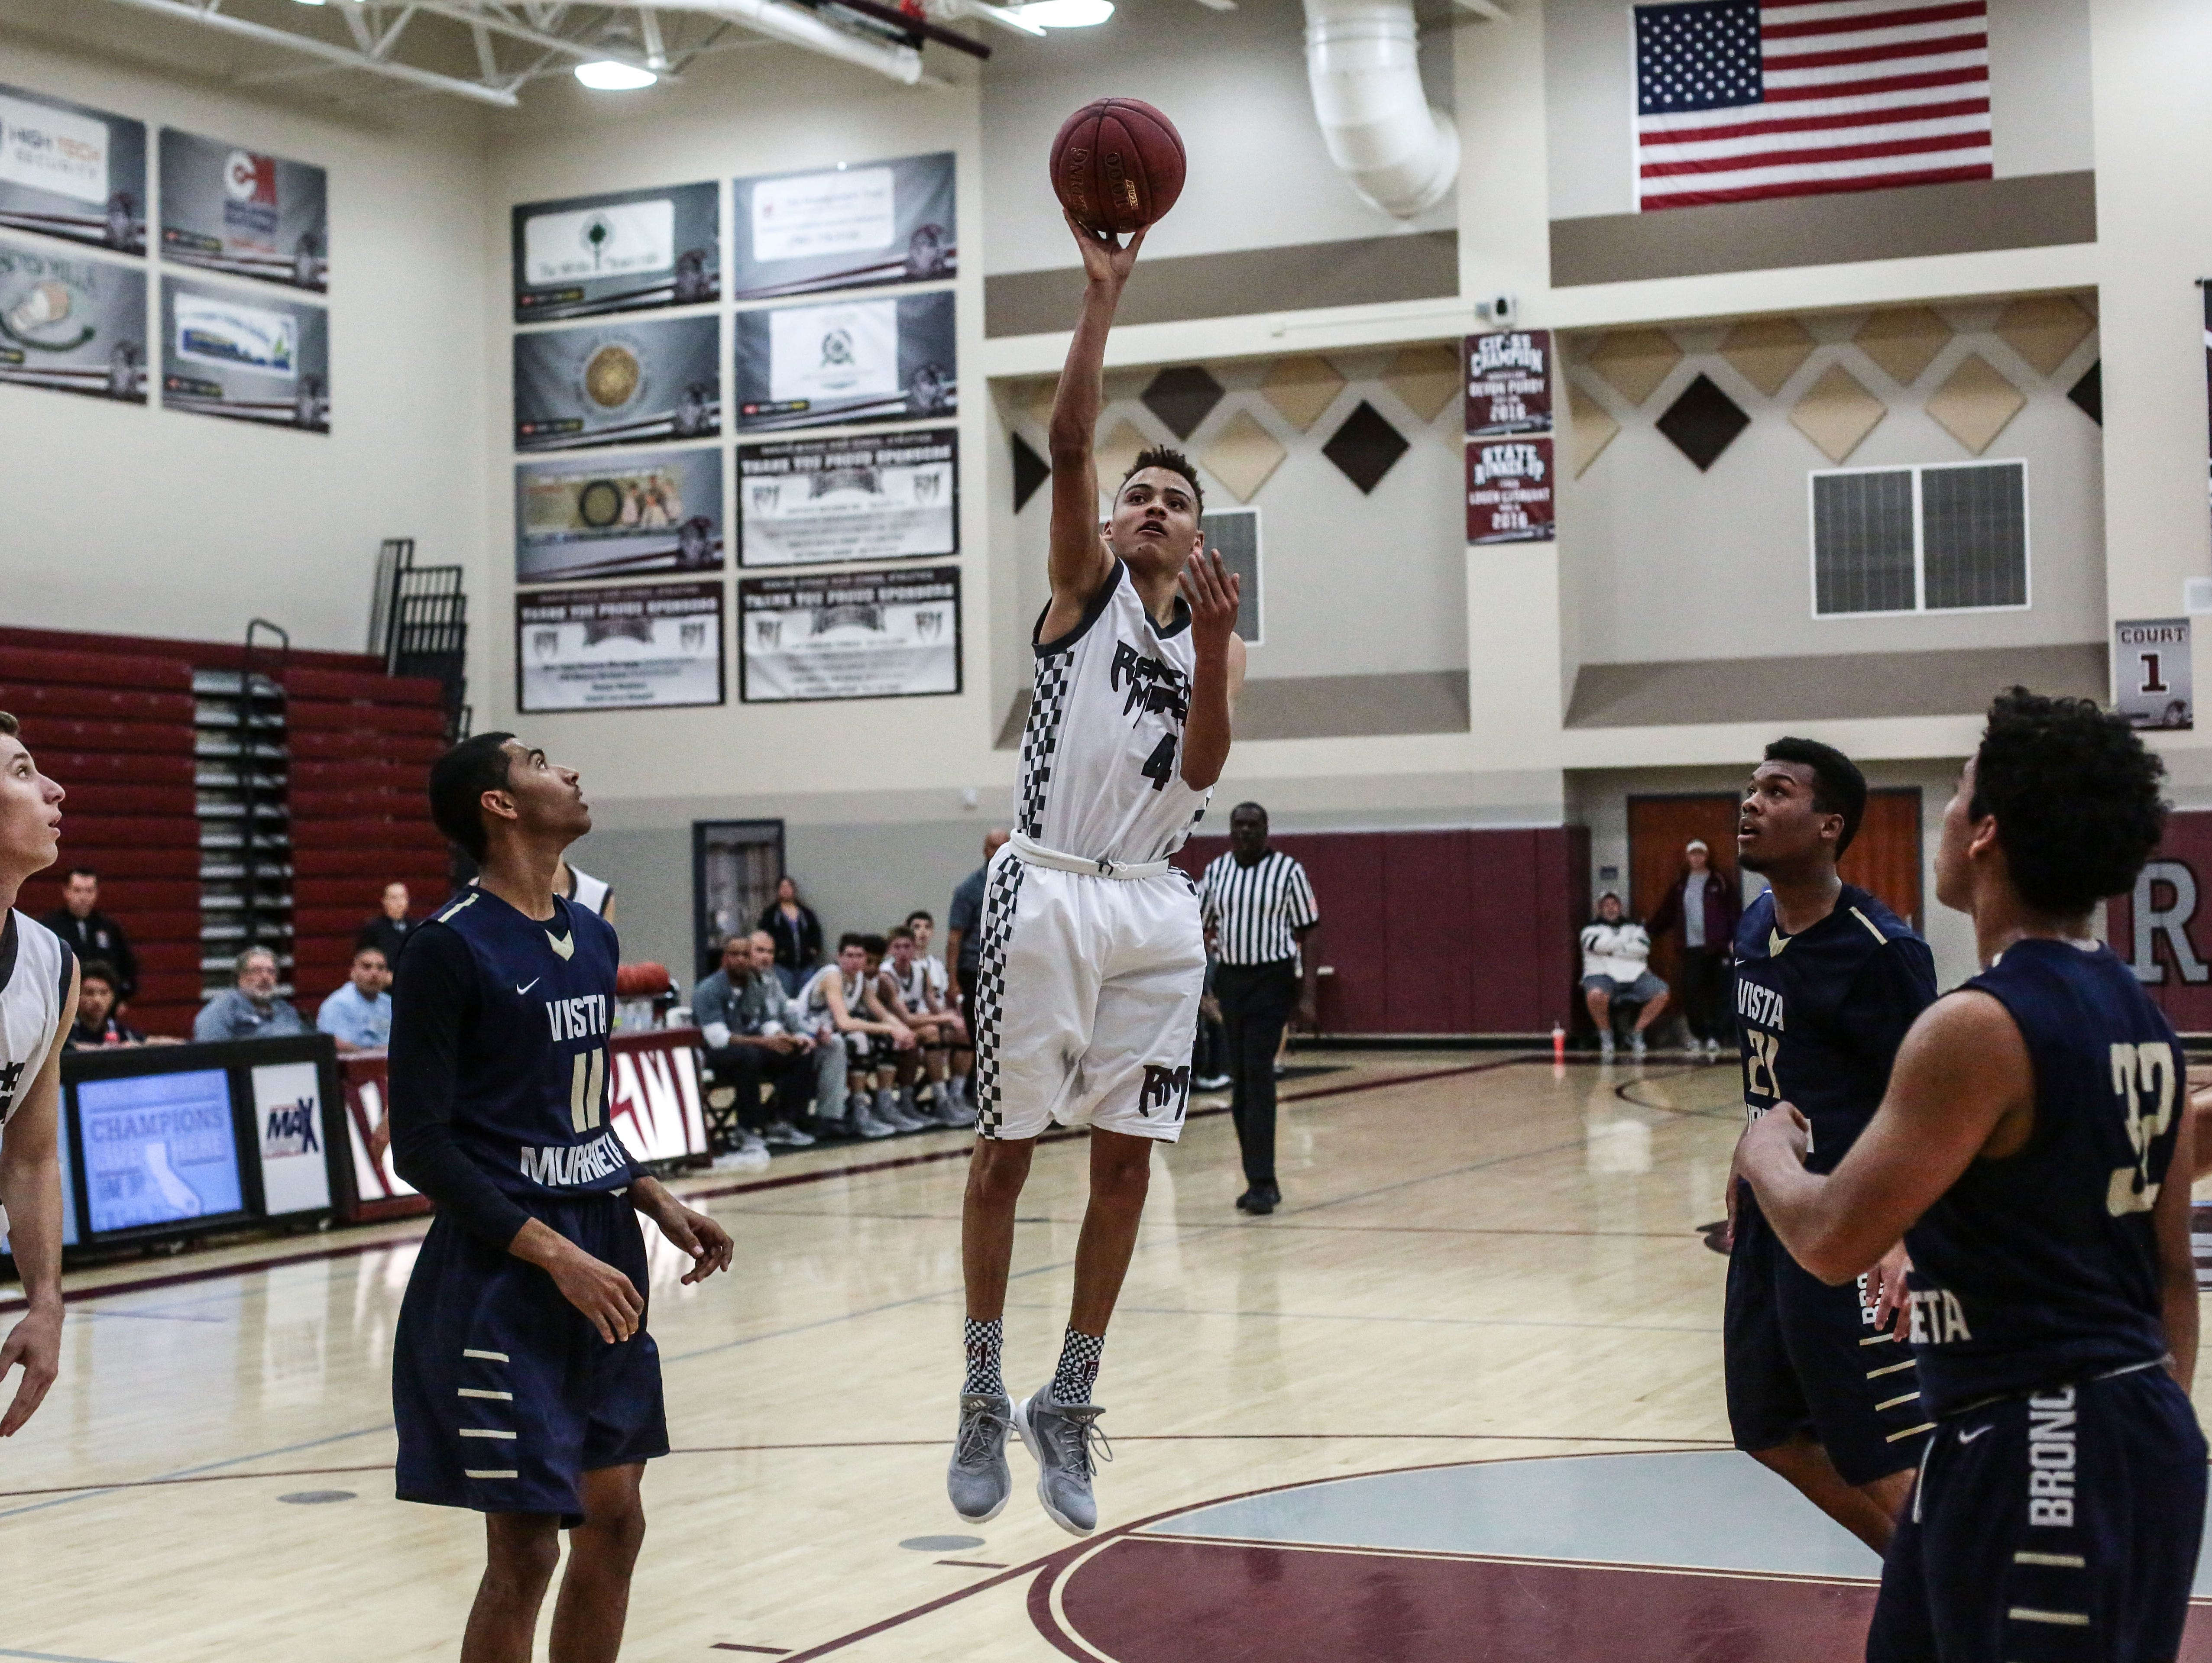 Rancho Mirage's Charles Neal shoots and scores against Vista Murrieta on Saturday, December 10, 2016 during the finals at the Showdown in the Snakepit in Rancho Mirage.